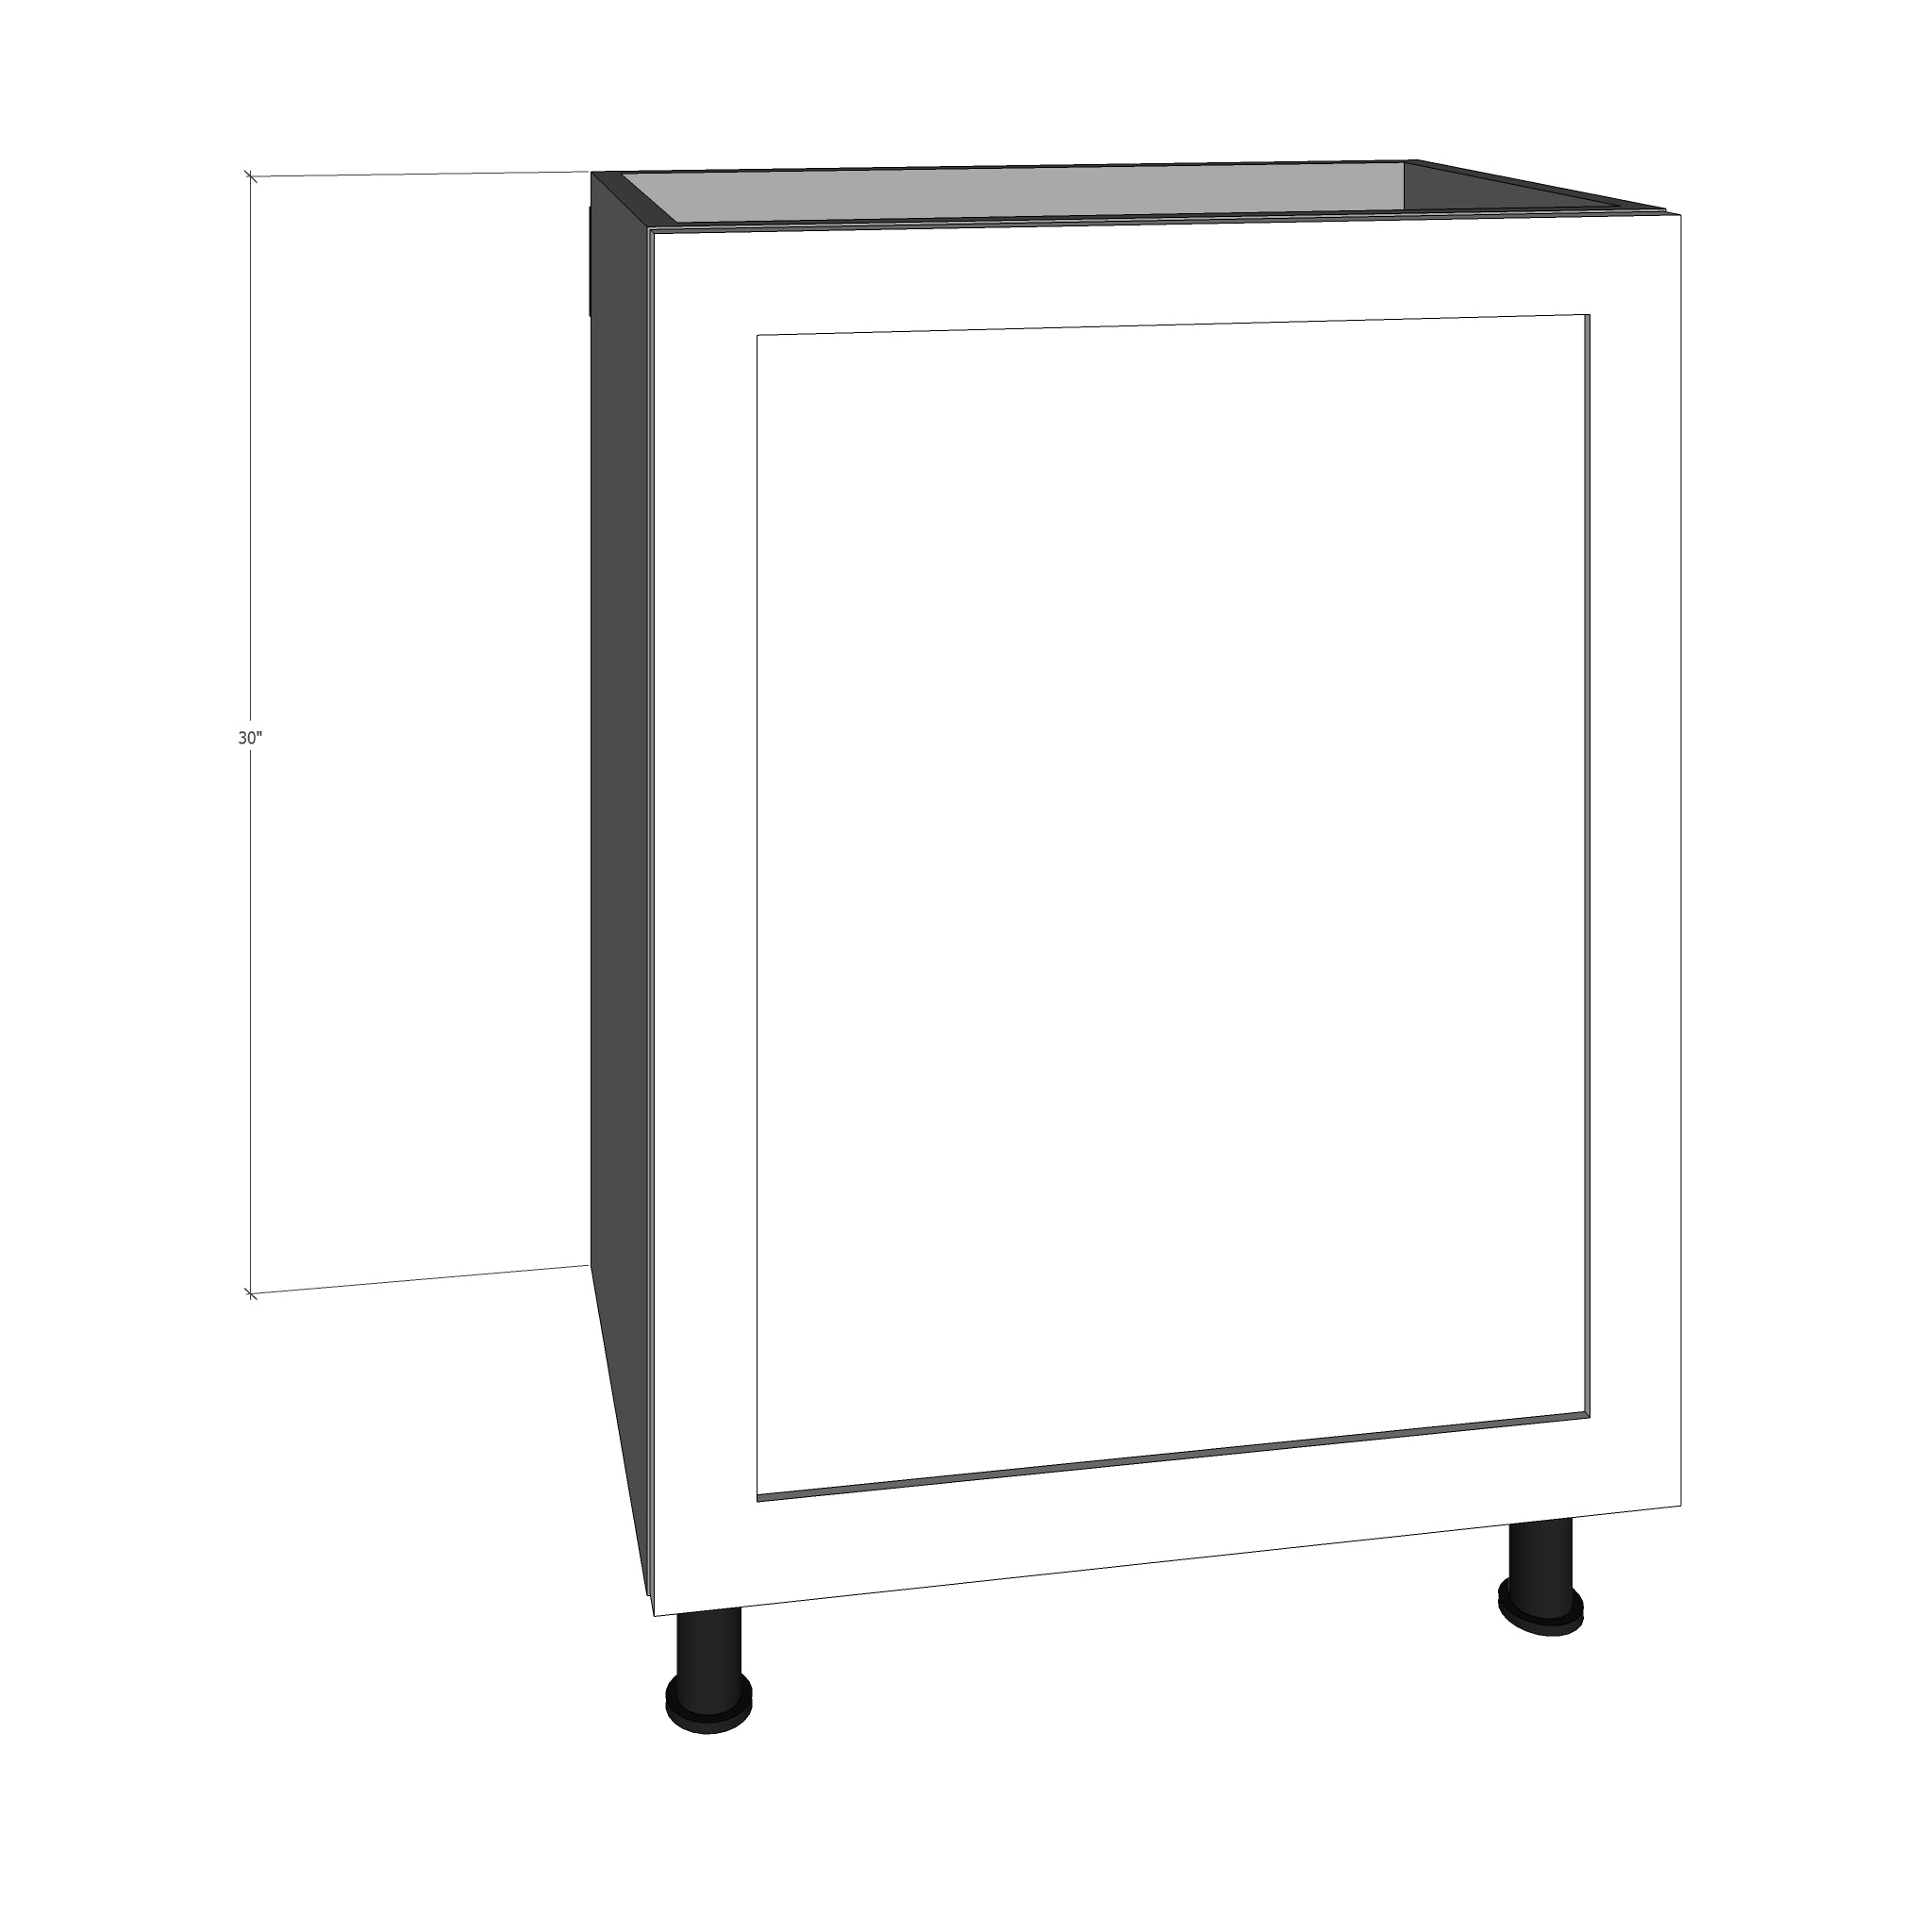 Bpo 24 Pullout Door For 24 W Ikea Sektion Base Cabinet Allstyle